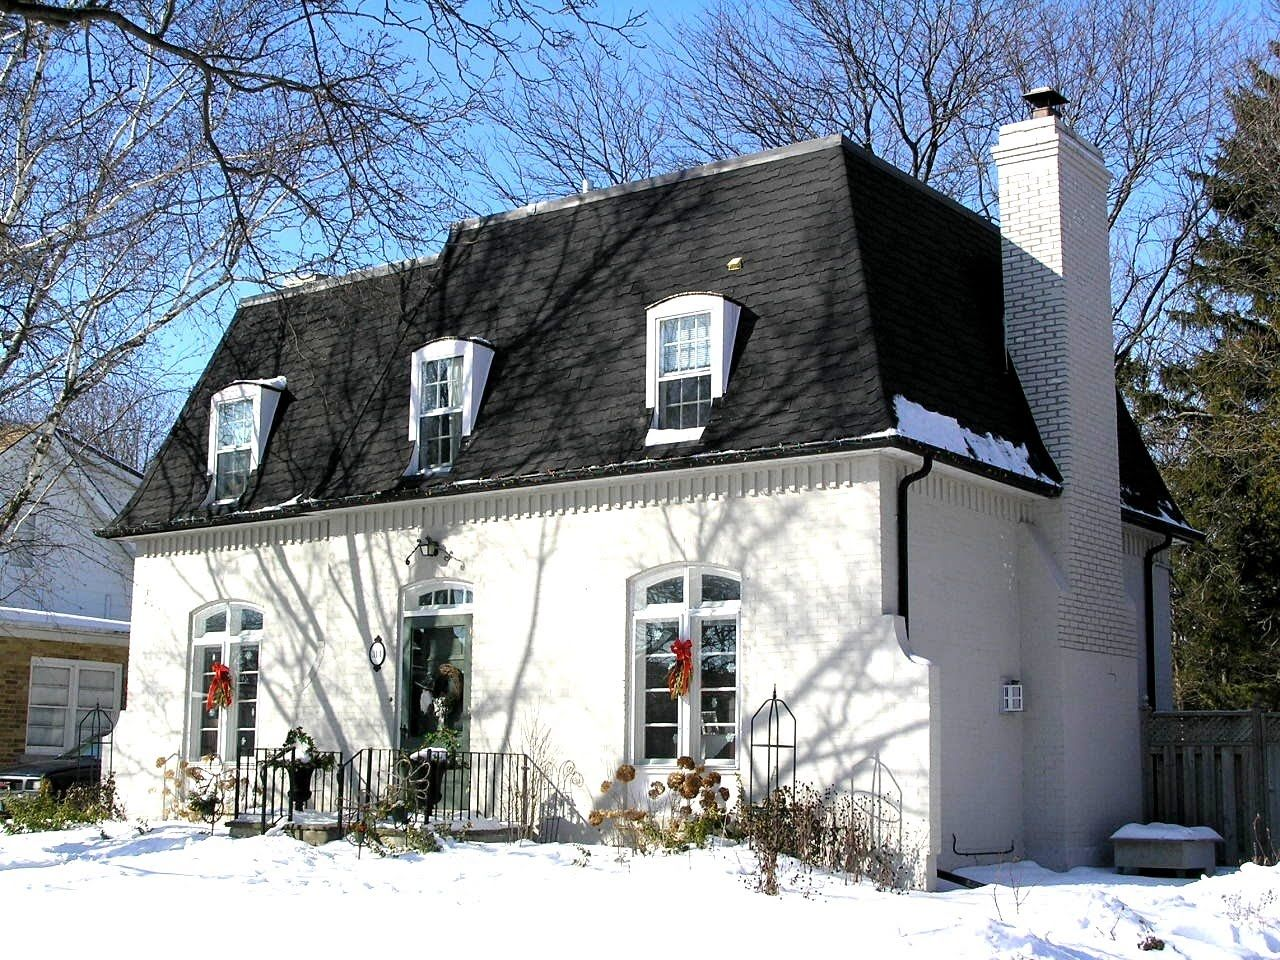 Mansard Roof How To Build And Its Advantages Disadvantages Exterior House Remodel Facade House Mansard Roof